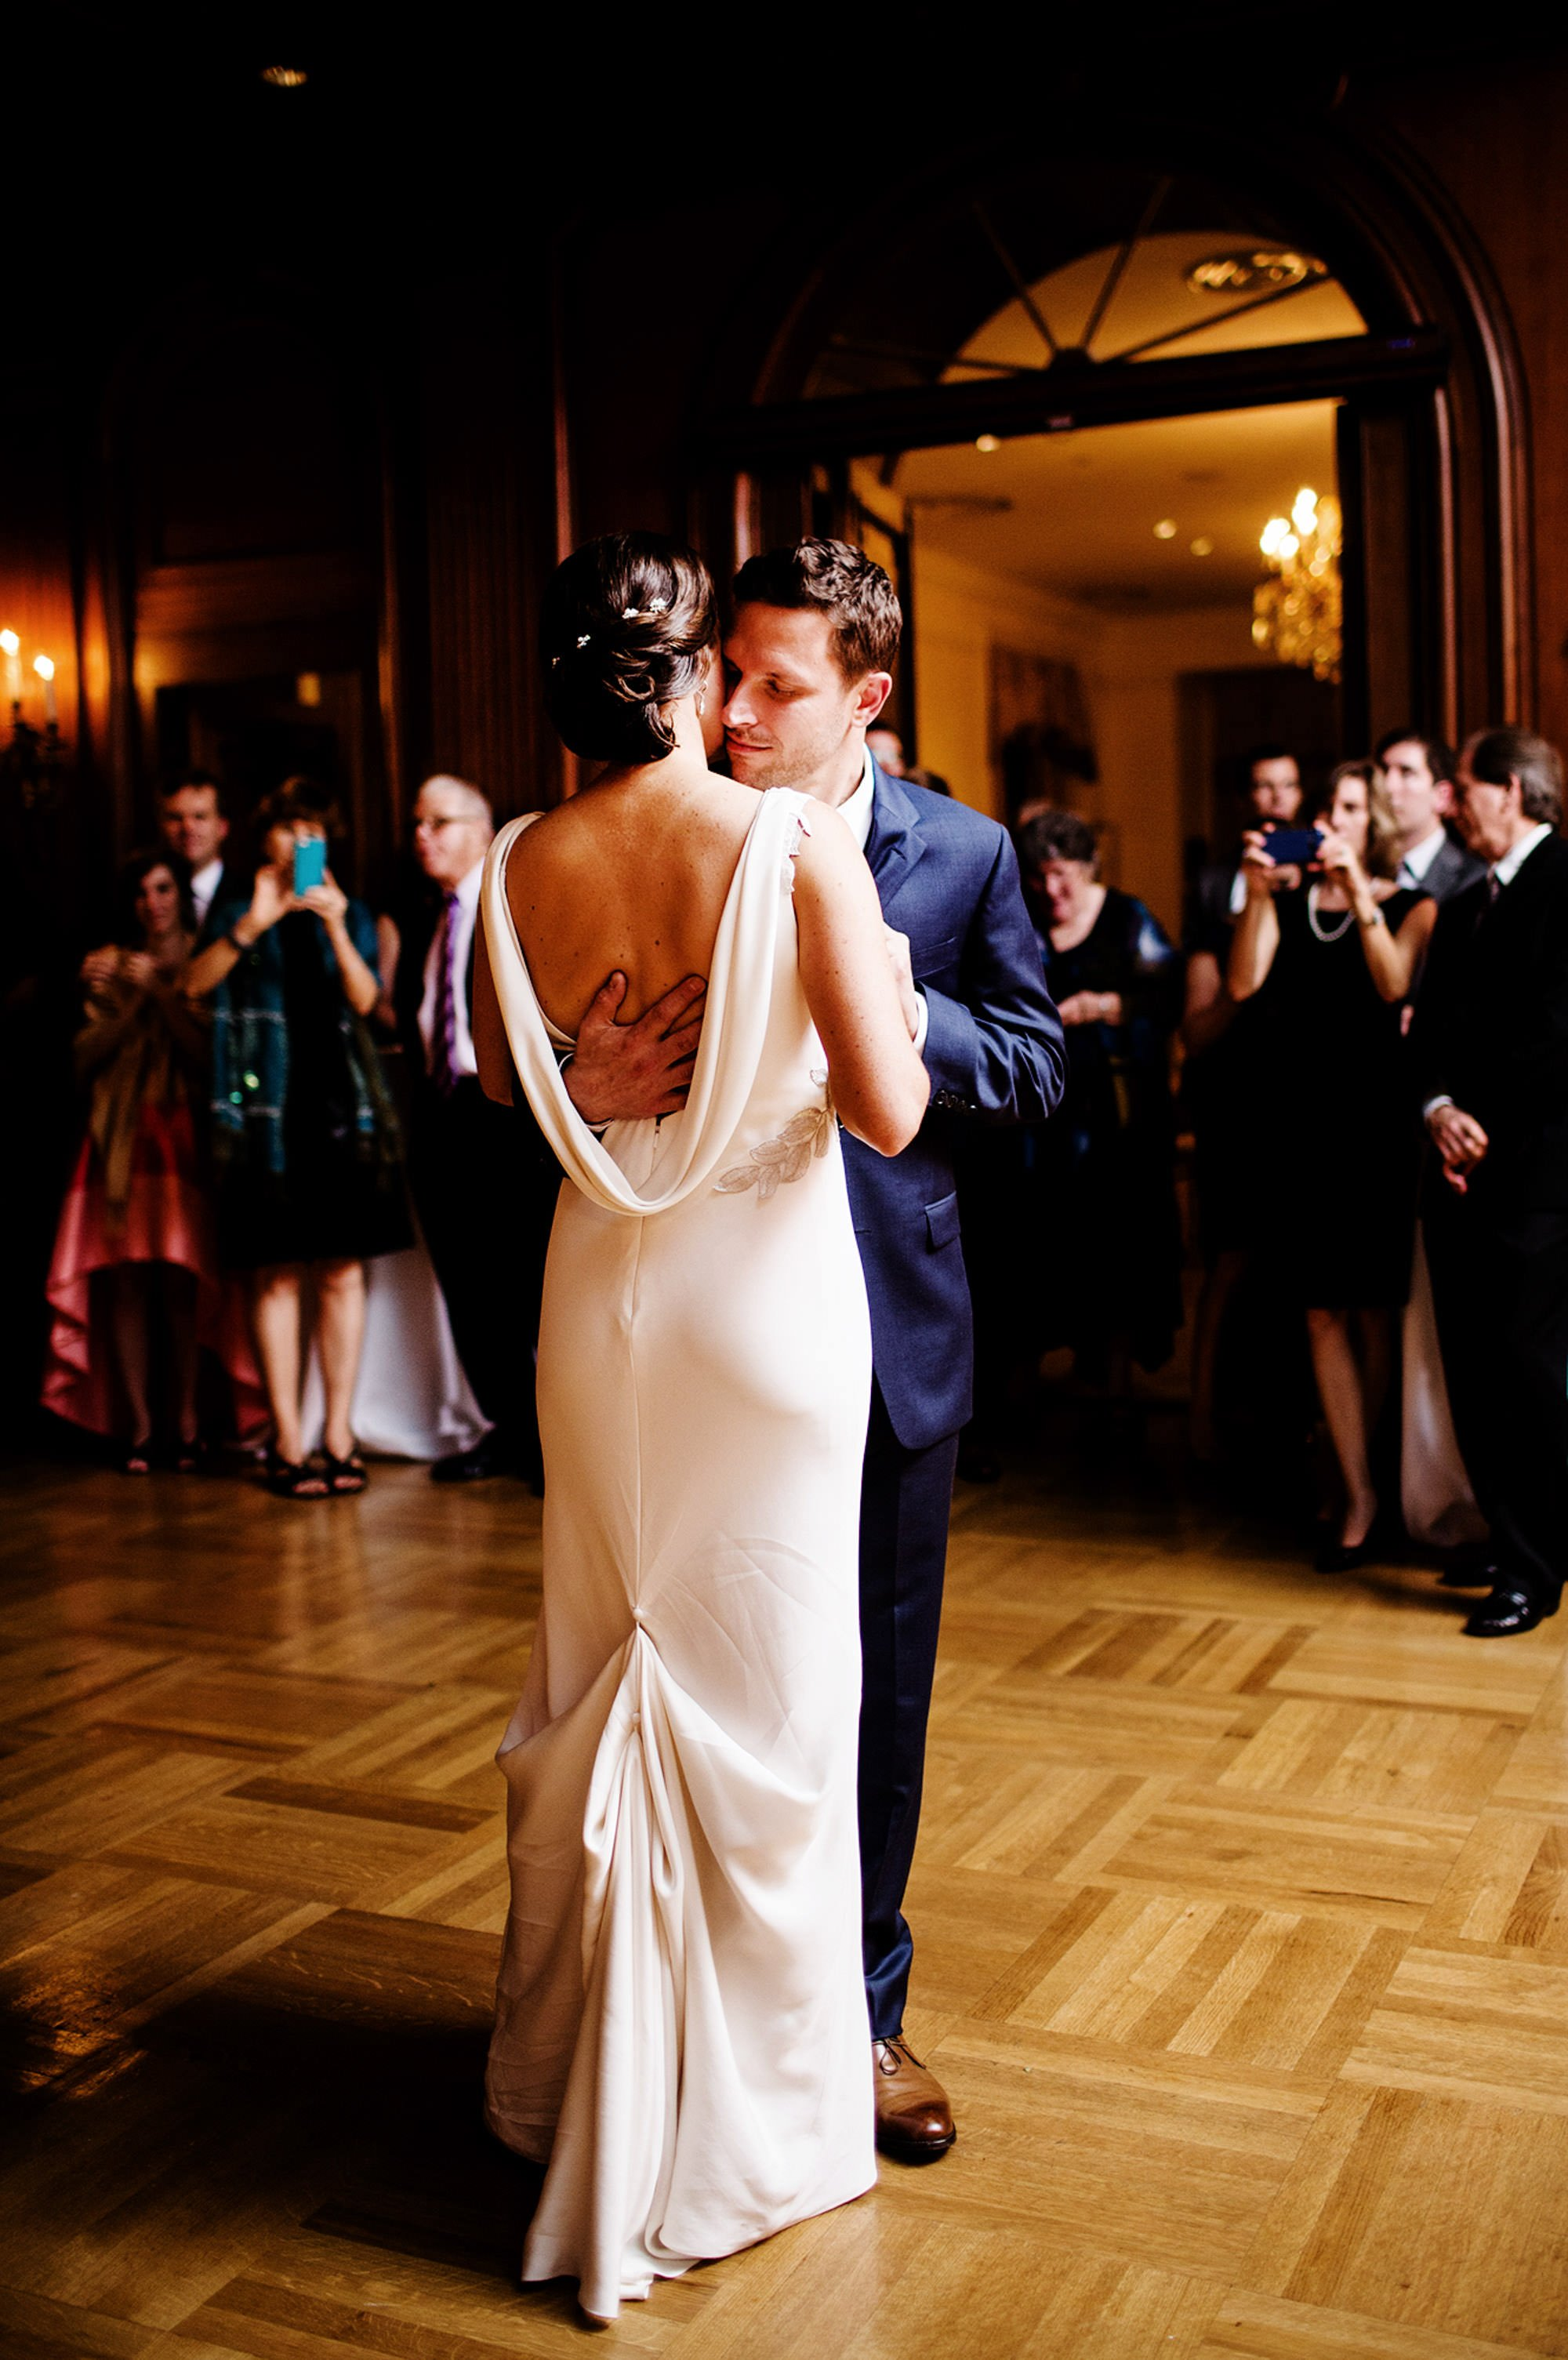 The Bride and Groom First Dance at Cosmos Club.